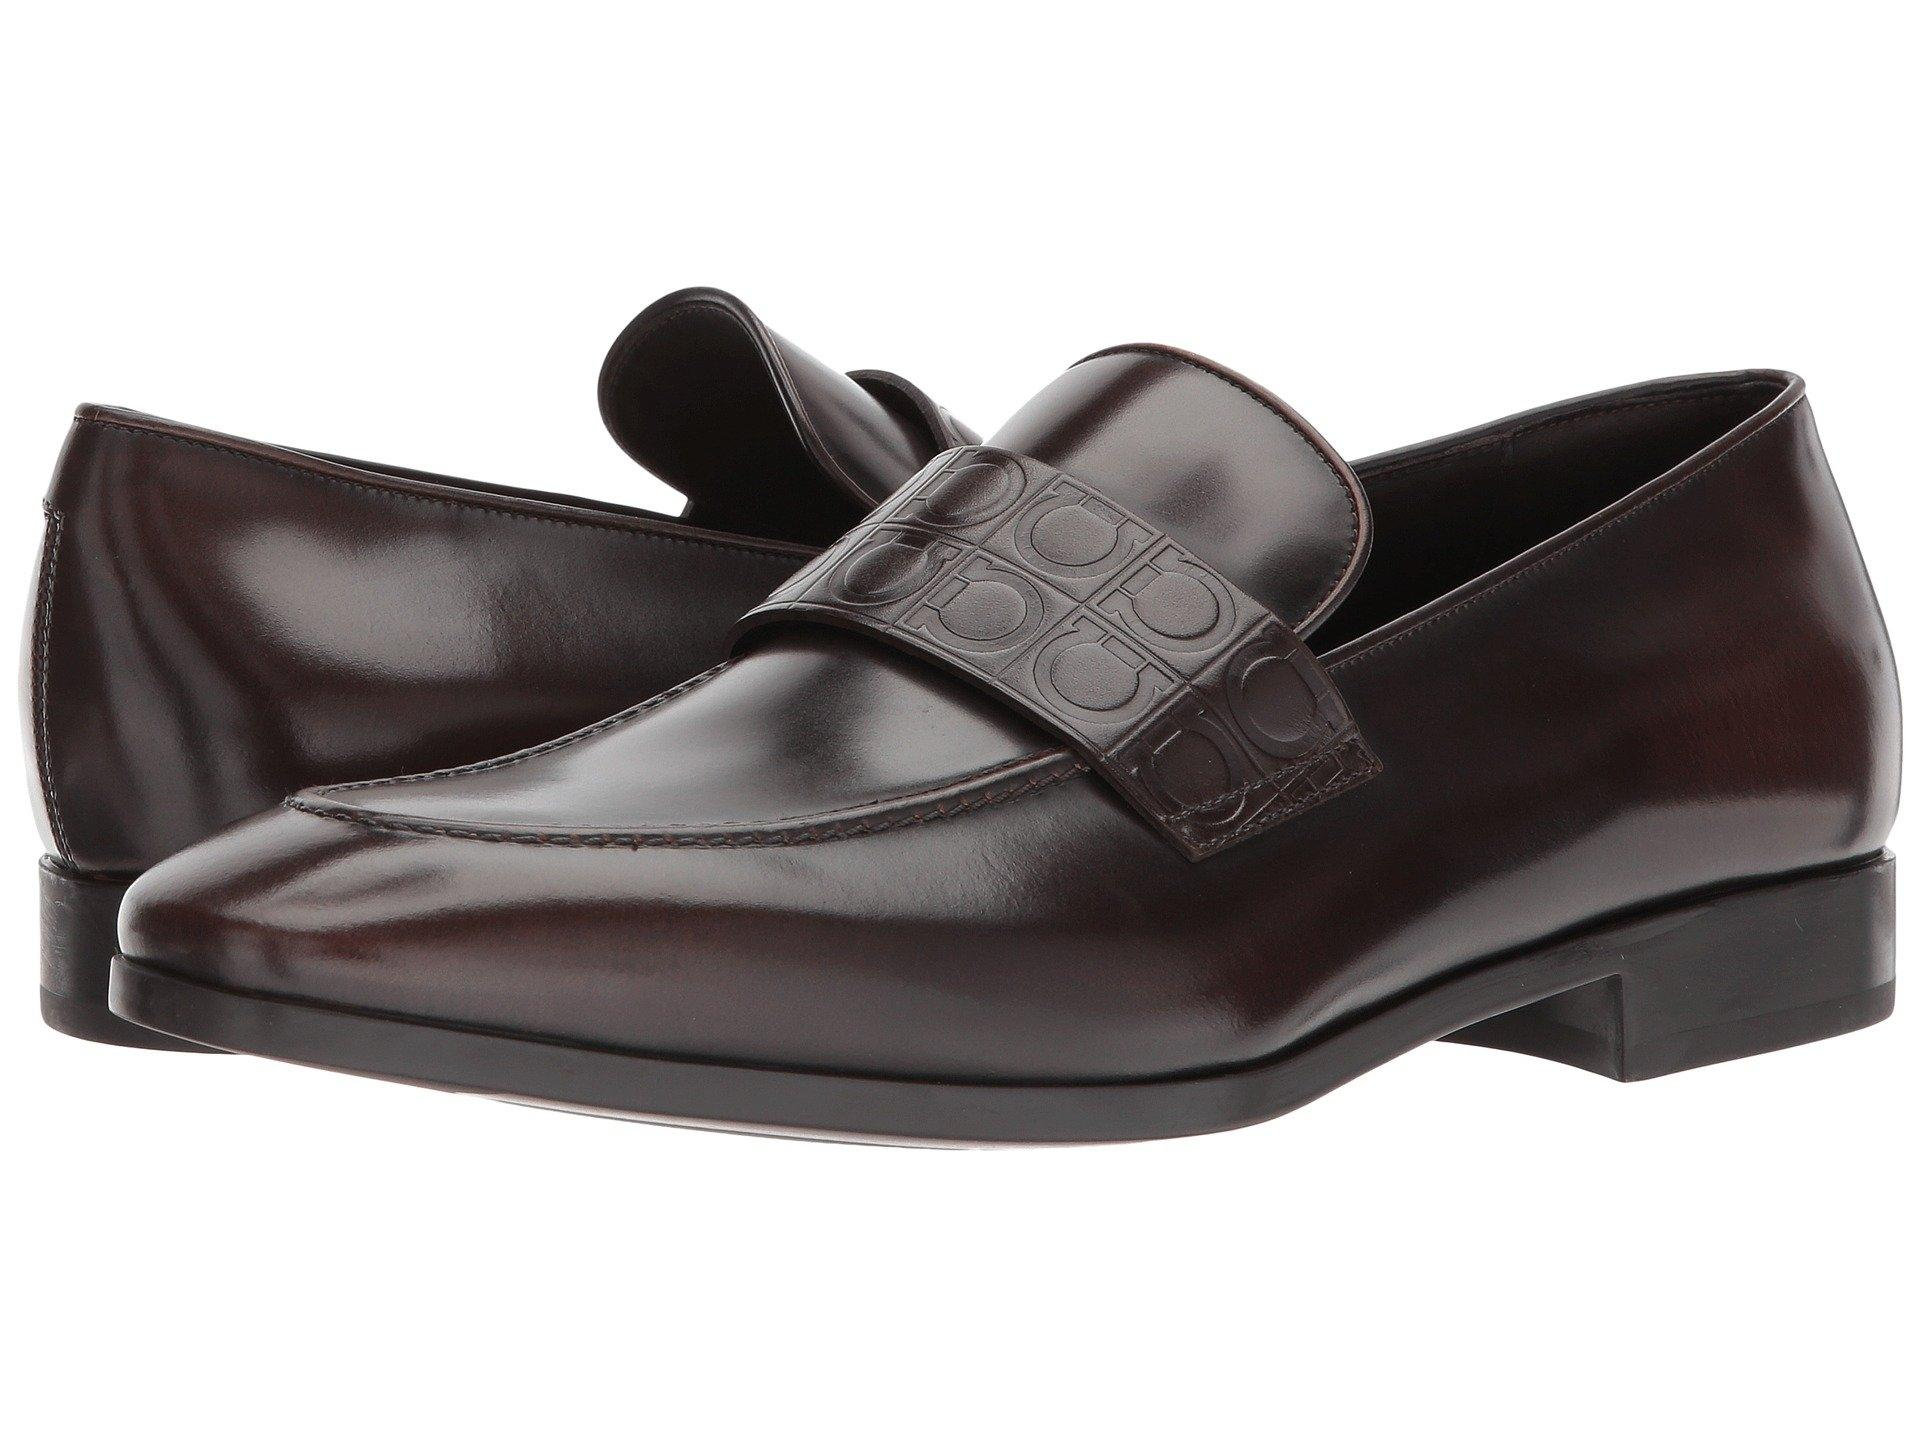 Salvatore Ferragamo Fondente Columbus Mens Leather Loafers Ee Formal Shoes Size US 11 Extra Wide (Ww, Ee)